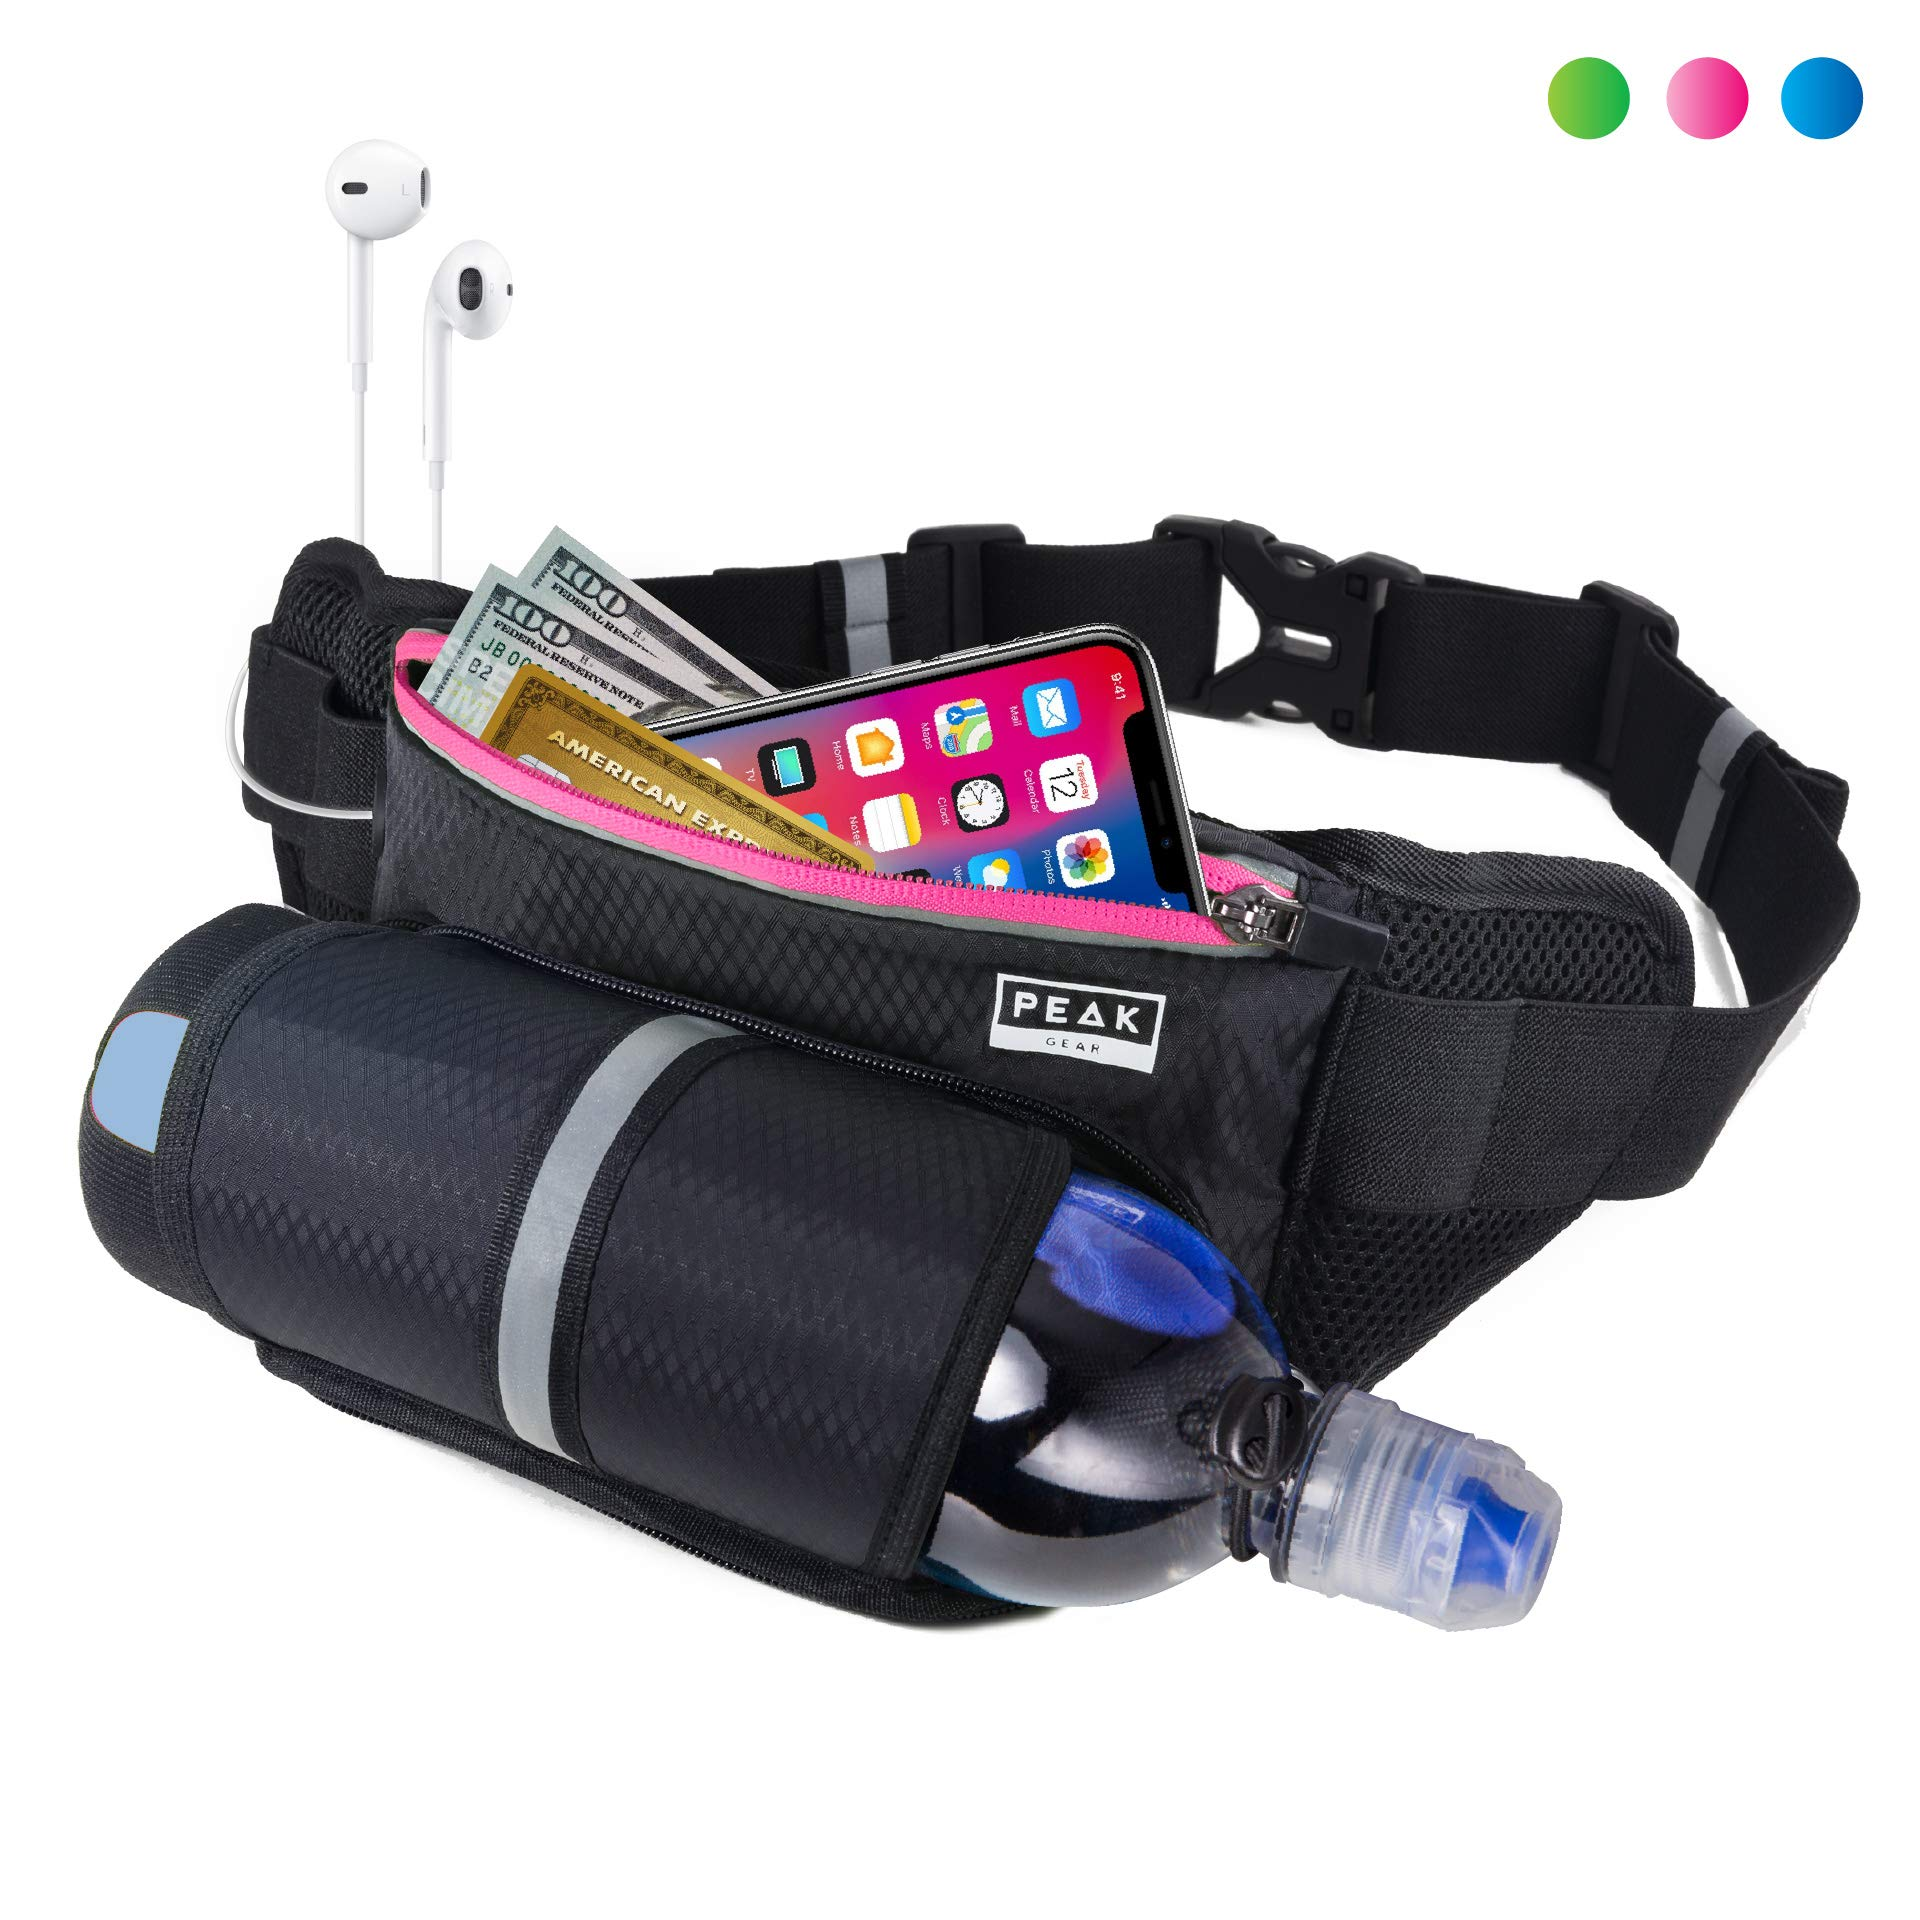 Peak Gear Waist Pack and Water Bottle Belt - New Larger Size - Hydration Fanny Pack for Jogging, Walking or Hiking (Pink Zipper) by Peak Gear